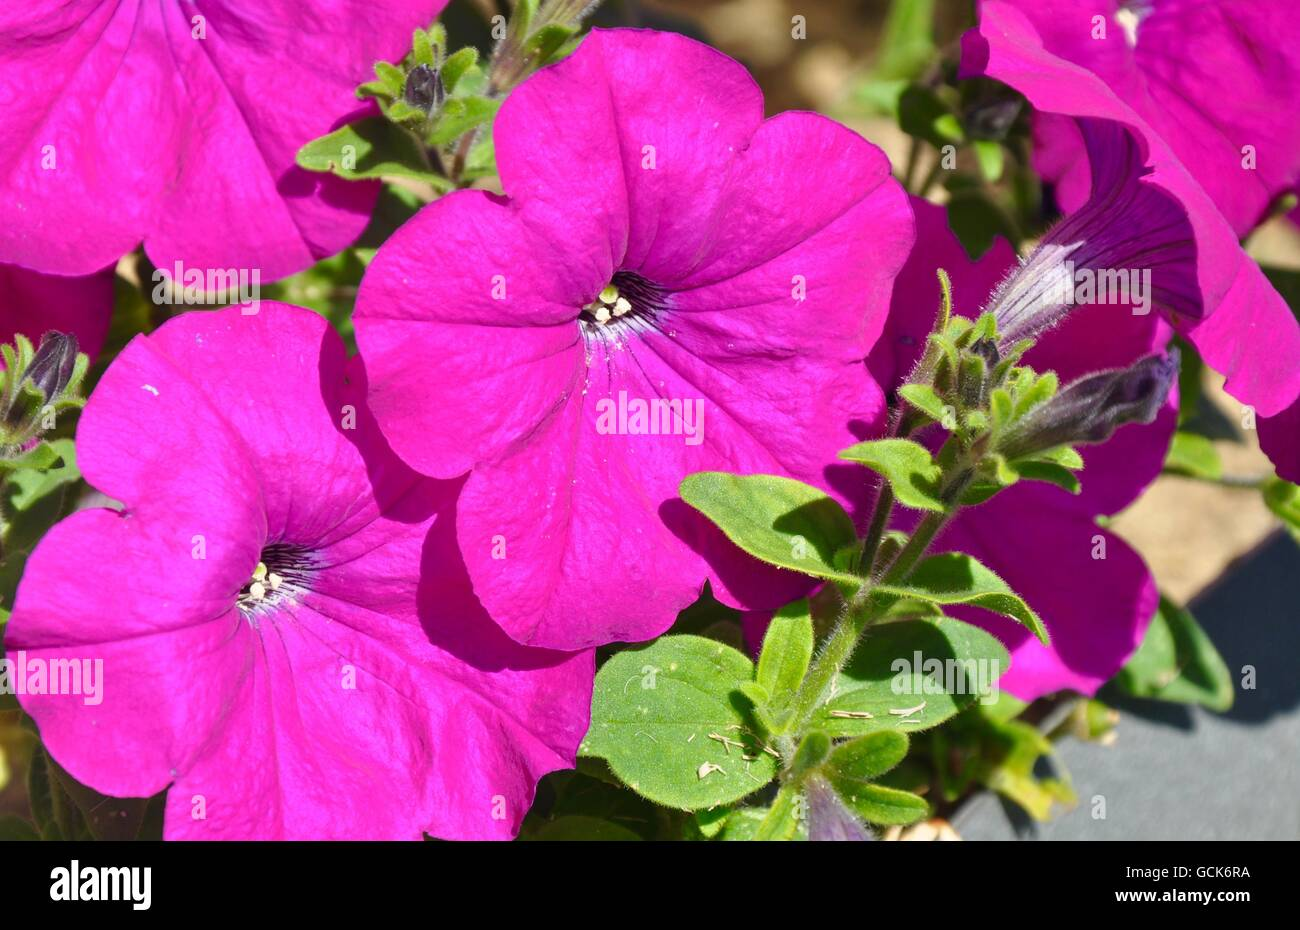 Hot Pink Purple Flowers Stock Photos Hot Pink Purple Flowers Stock